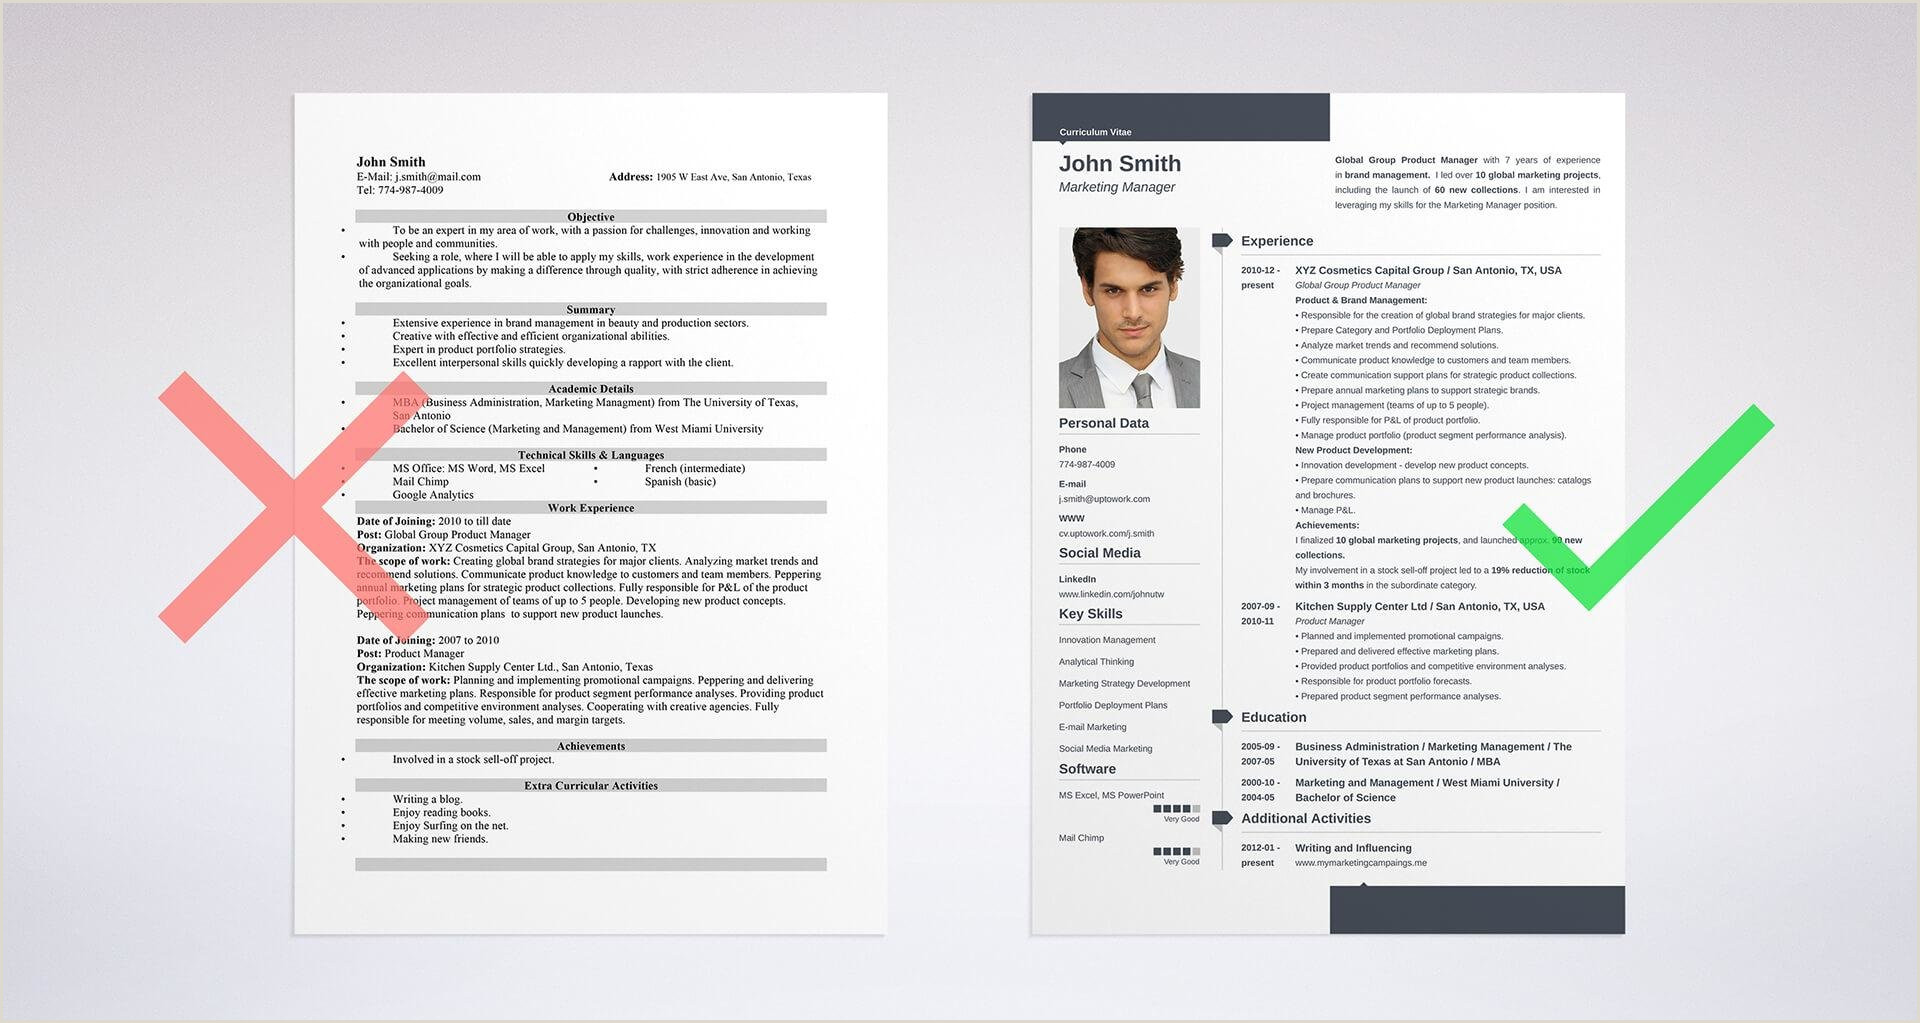 Resume Format For Job Mba Cv Vs Resume Difference Definitions & When To Use Which